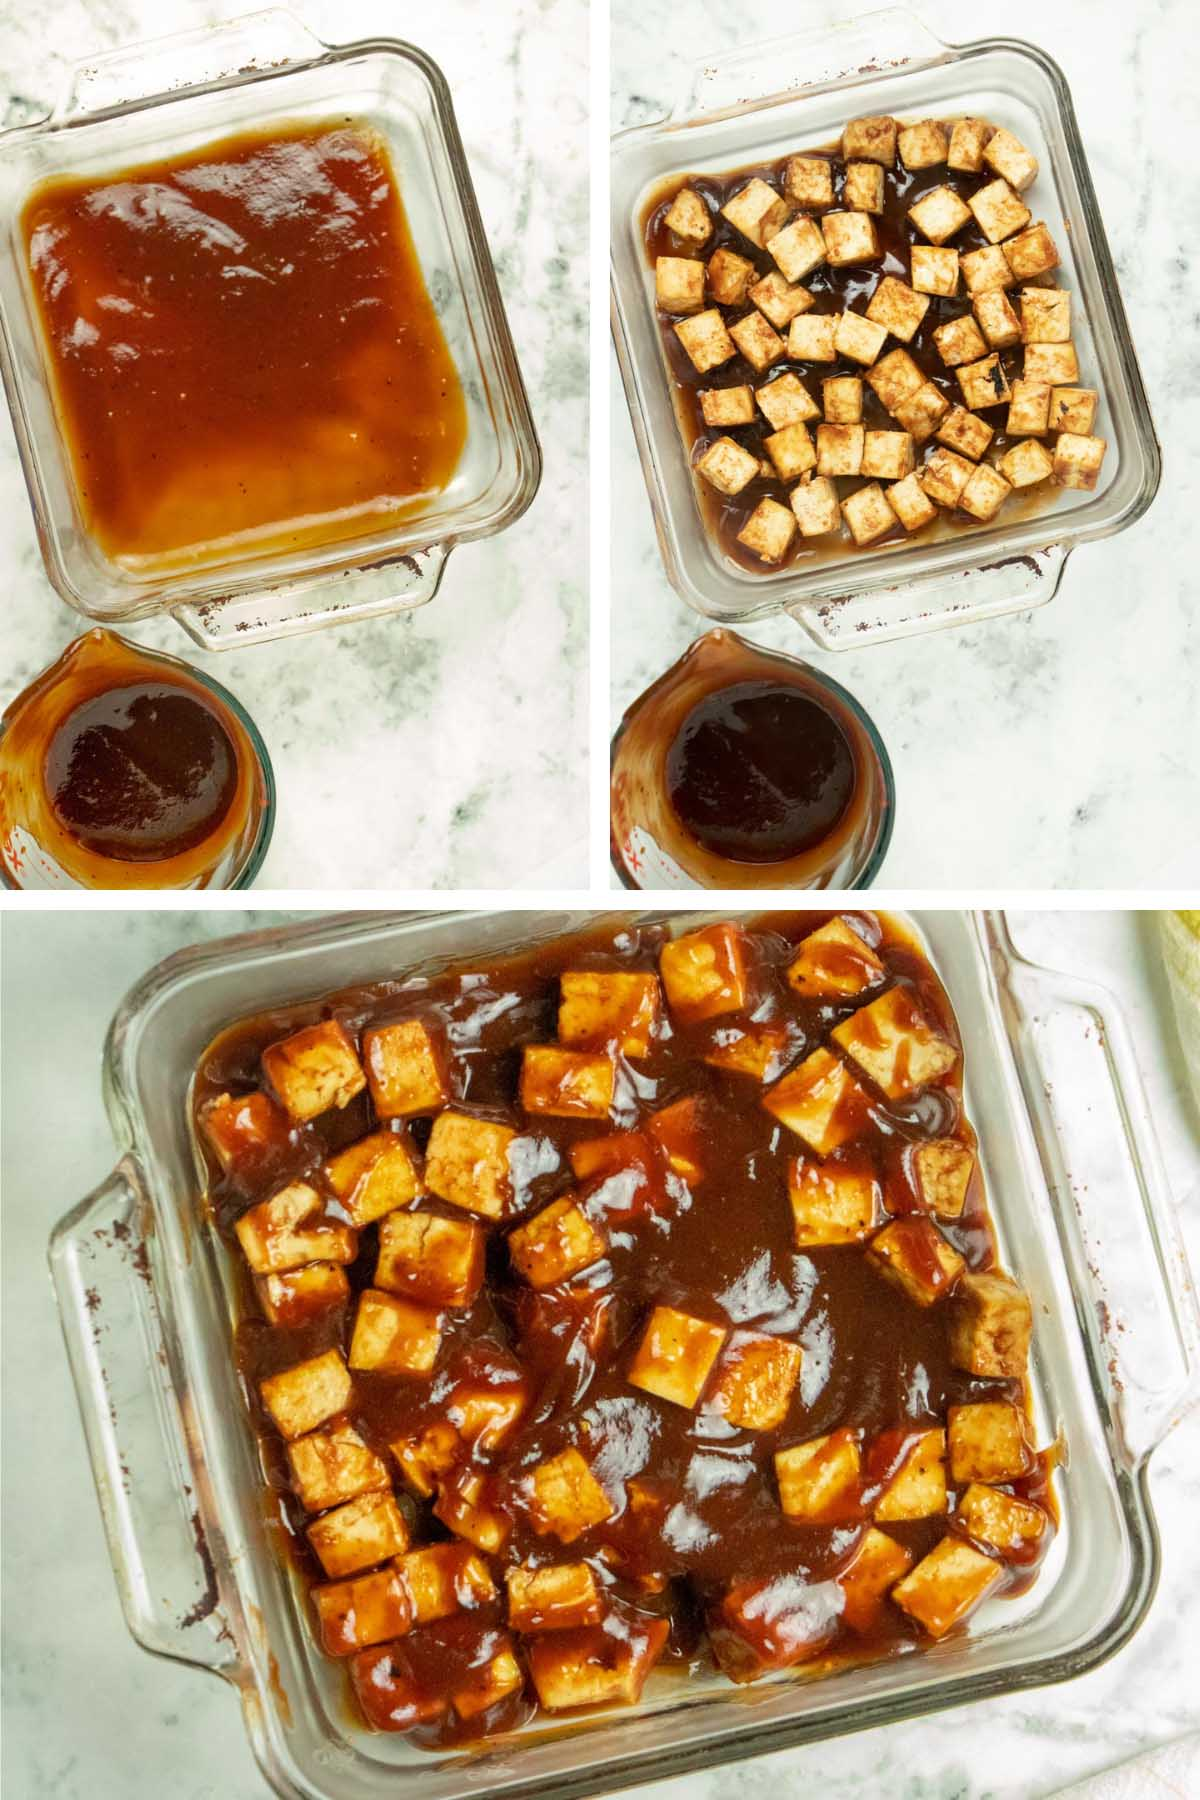 image collage showing a baking pan of BBQ sauce filling with tofu and more BBQ sauce